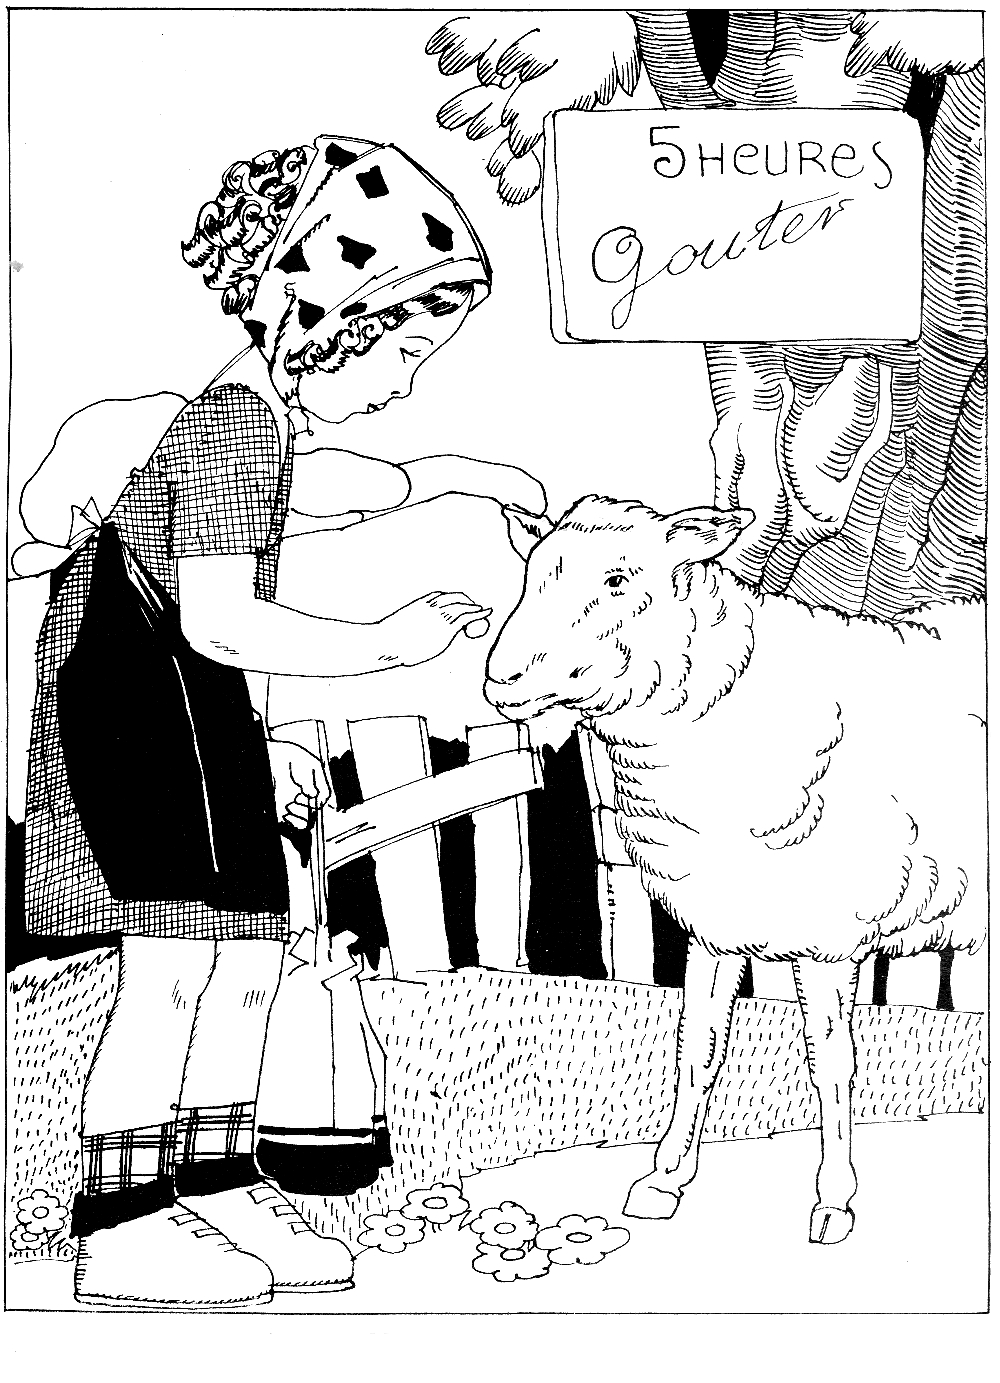 Top 25 Free Printable Sheep Coloring Pages Online | 1383x1000